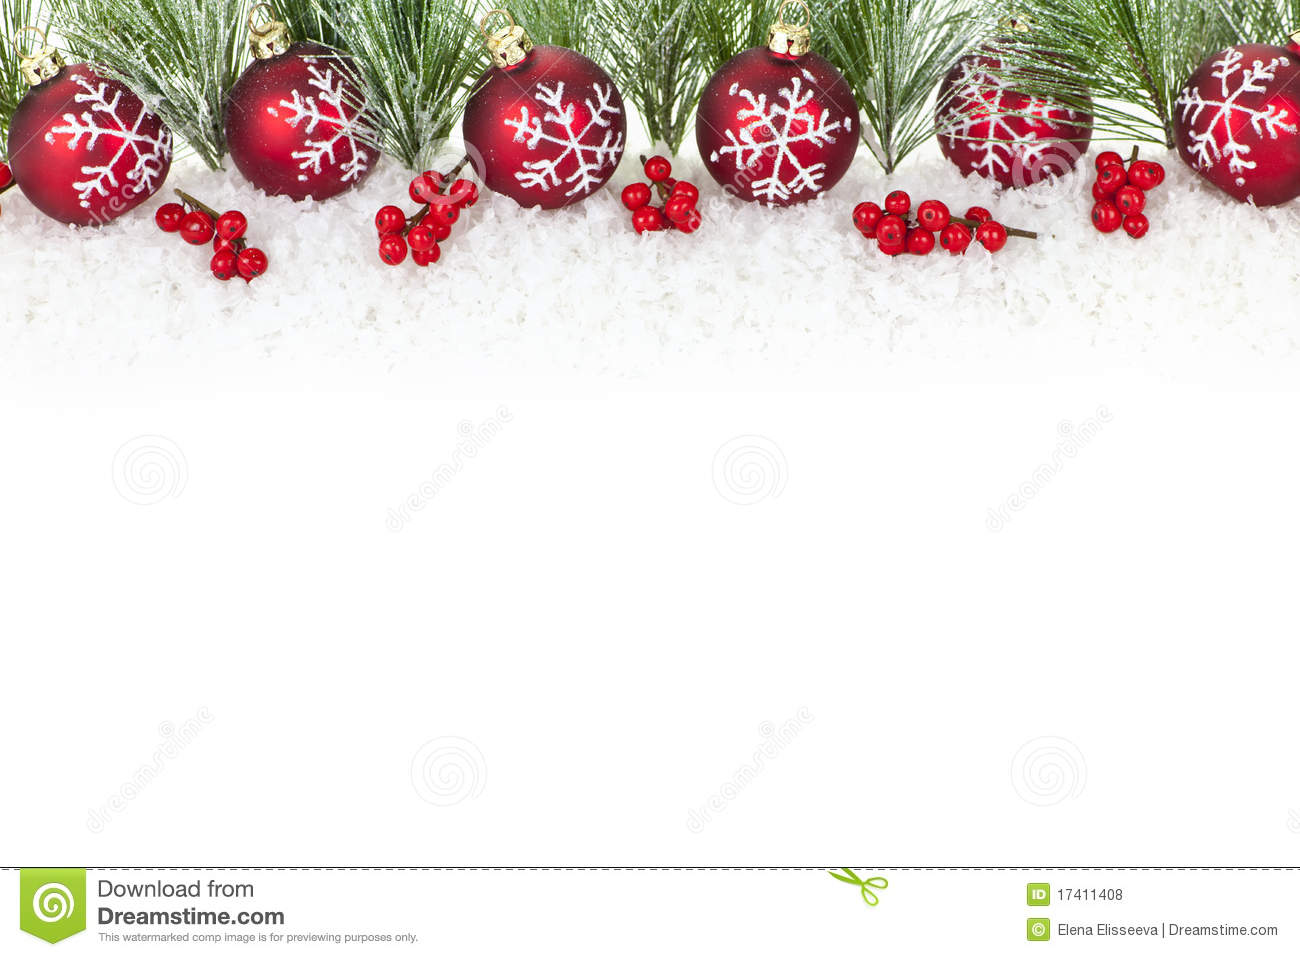 christmas border with red ornaments - Free Christmas Decorations